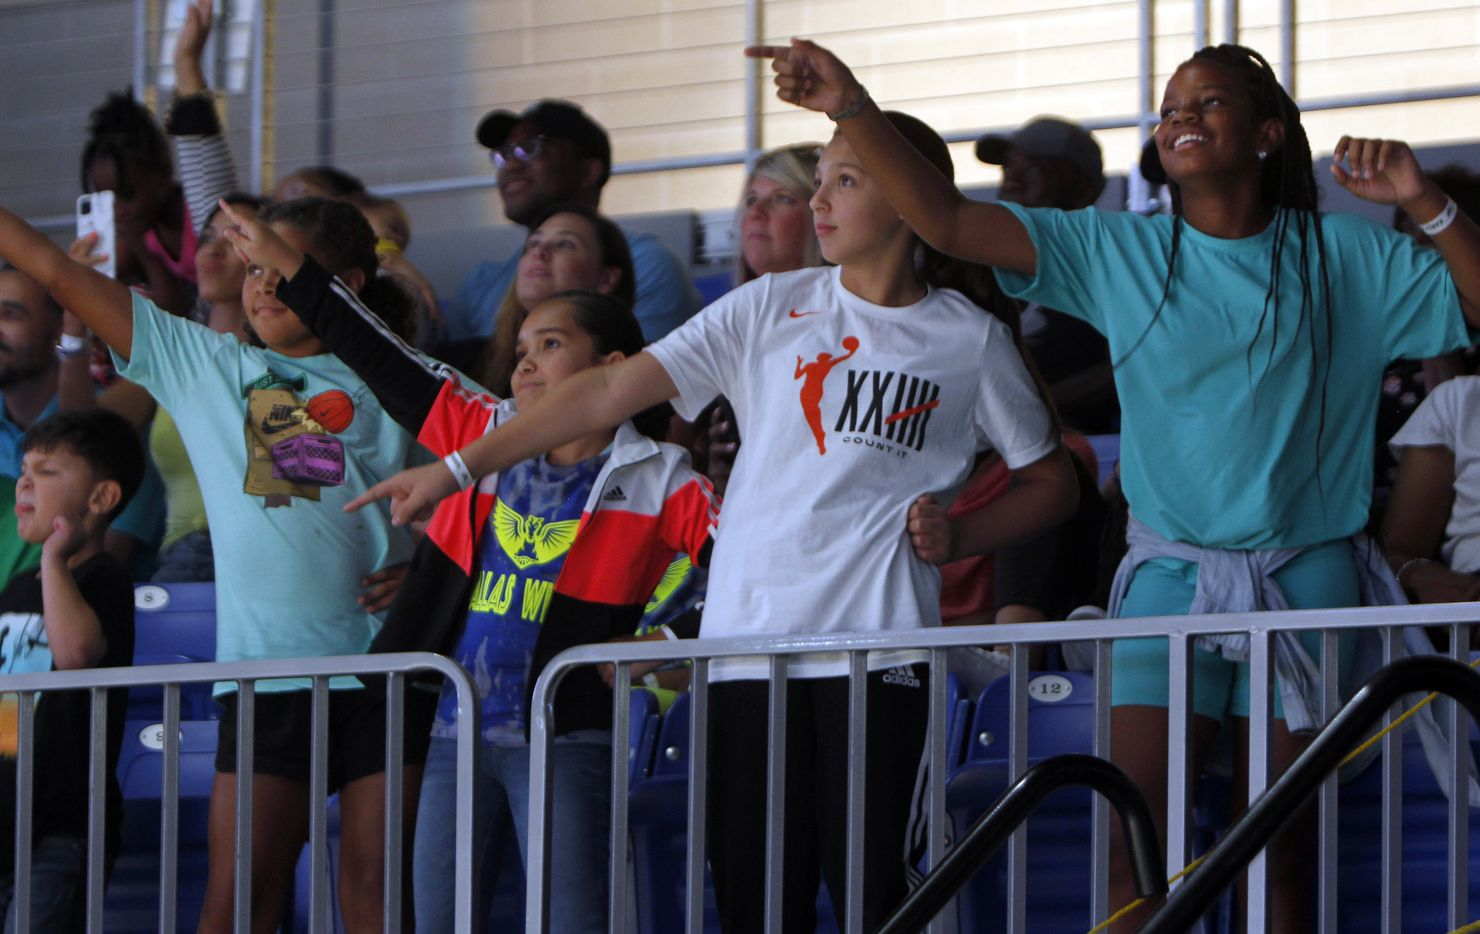 Young Wings fans display their dance moves for a chance to be seen on the scoreboard screen during a second half timeout of the Wings versus Chicago Sky game. The two WNBA teams played their game at College Park Center in Arlington on July 2, 2021. (Steve Hamm/ Special Contributor)